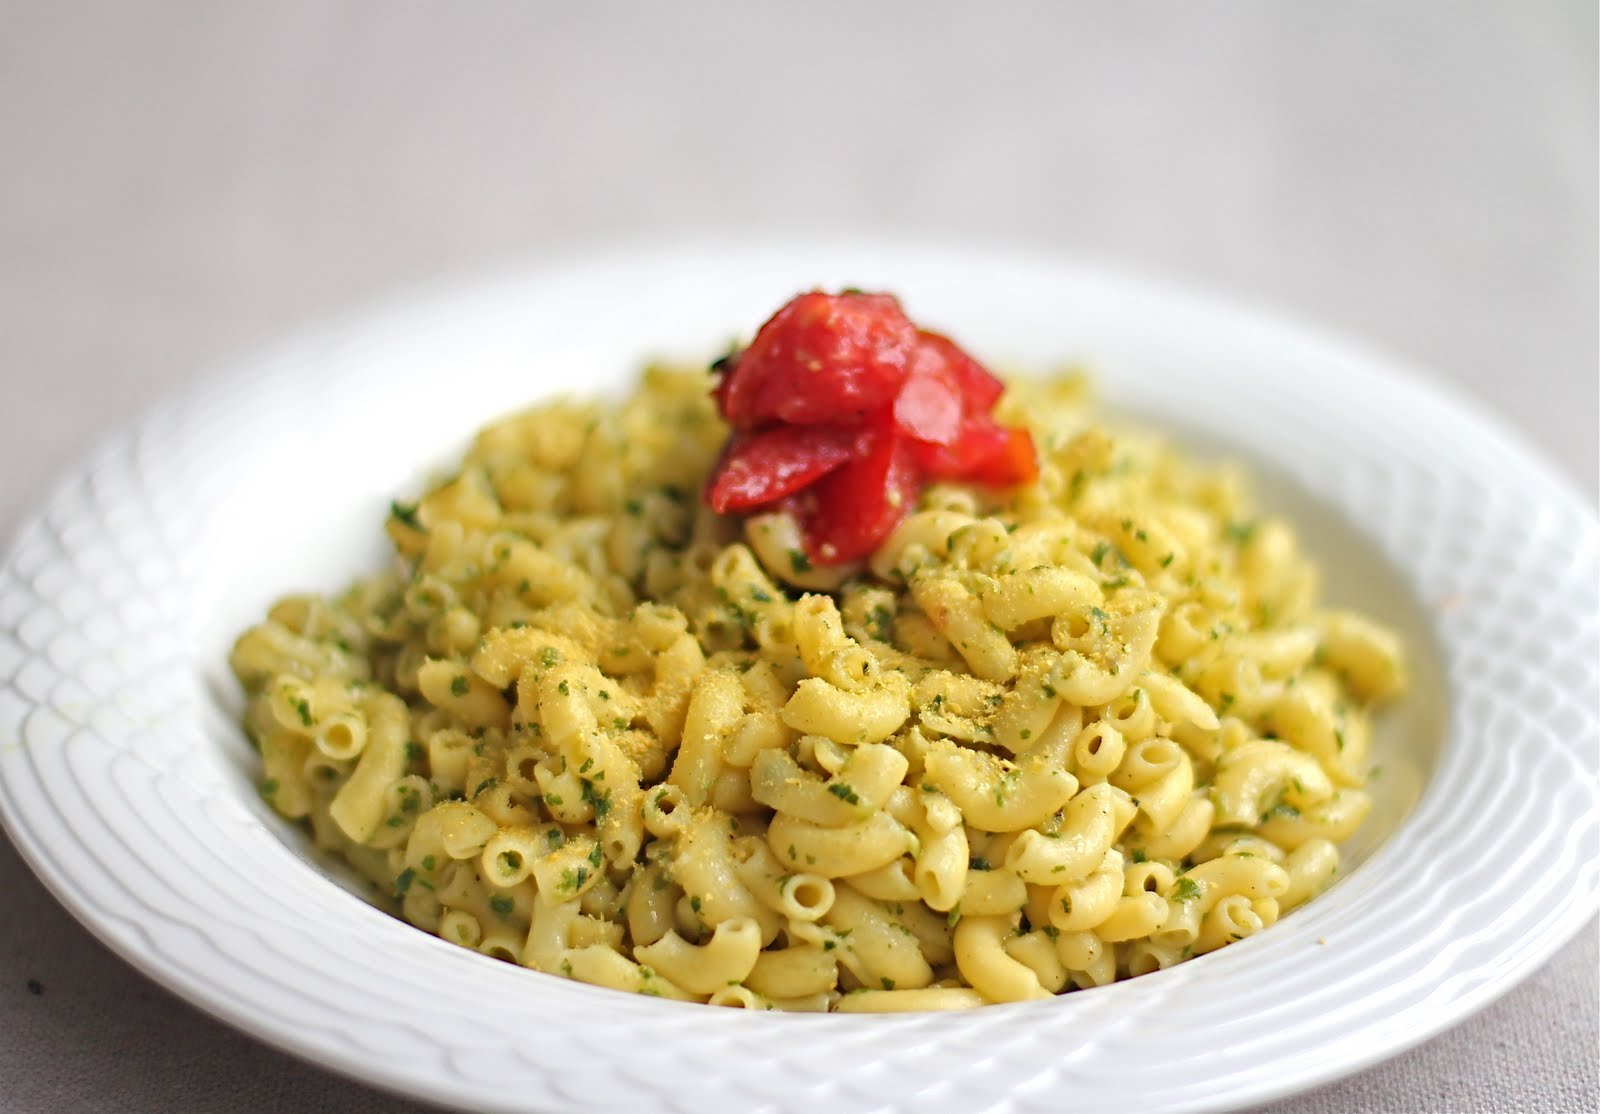 Dairy-Free Swiss Chard Garlic Scape Pesto with Gluten-Free Pasta